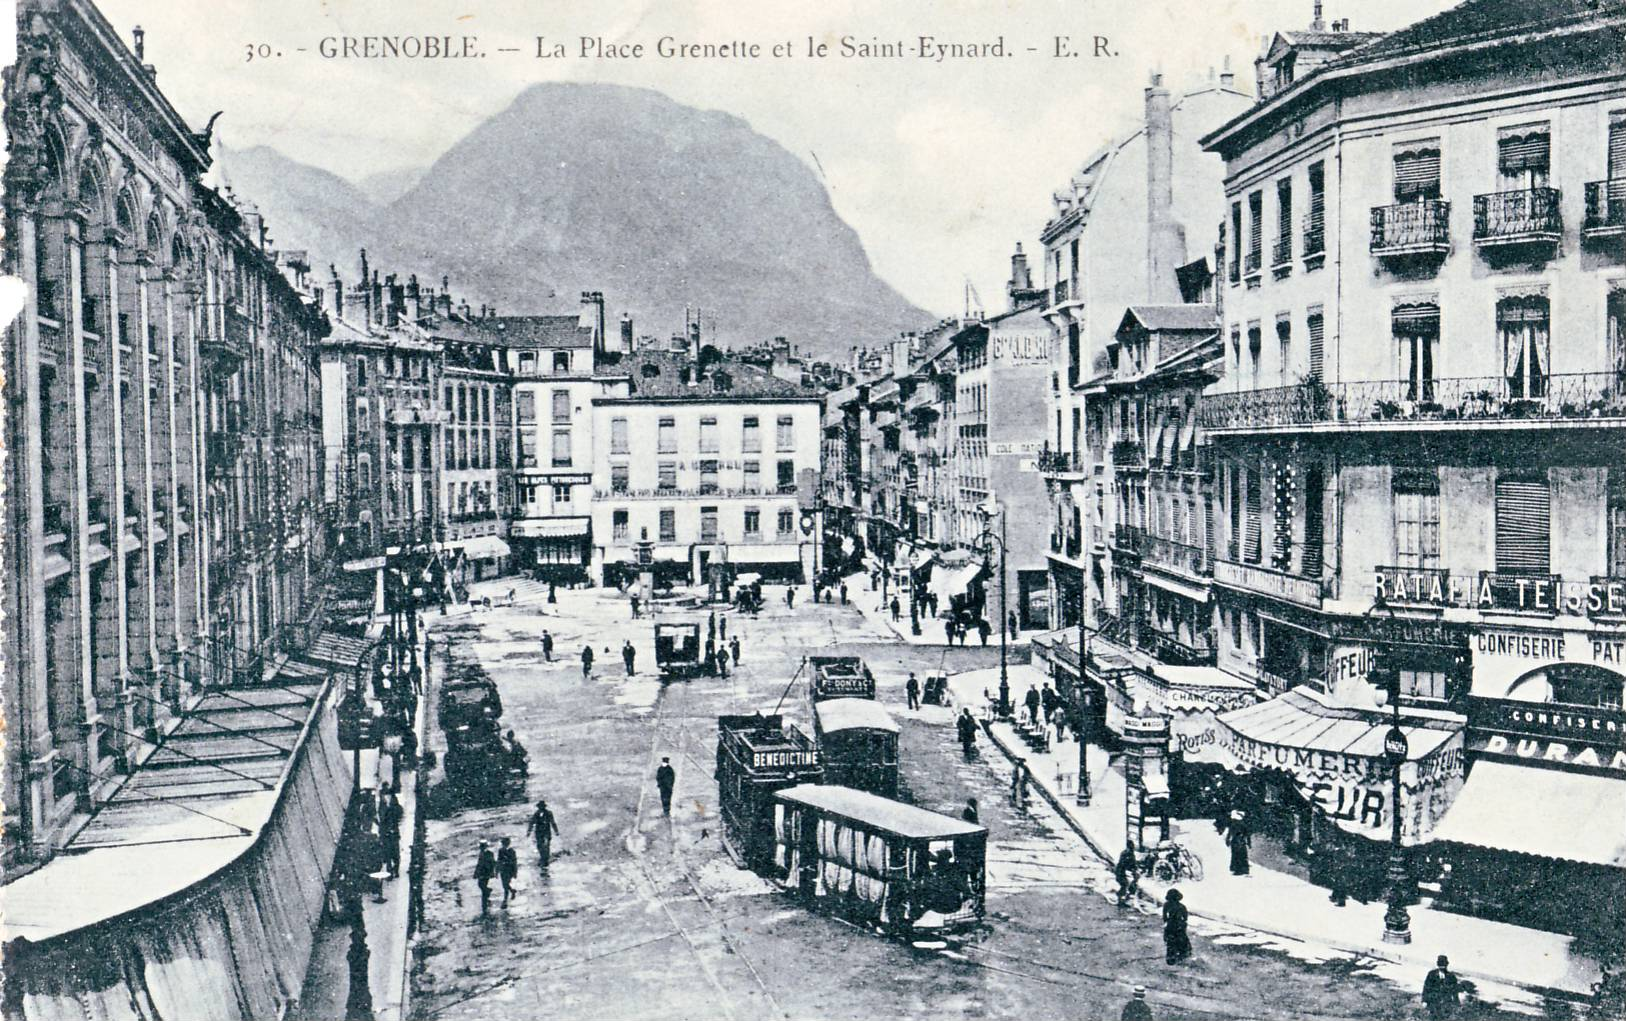 file er 30 grenoble la place grenette et le st eynard jpg wikimedia commons. Black Bedroom Furniture Sets. Home Design Ideas